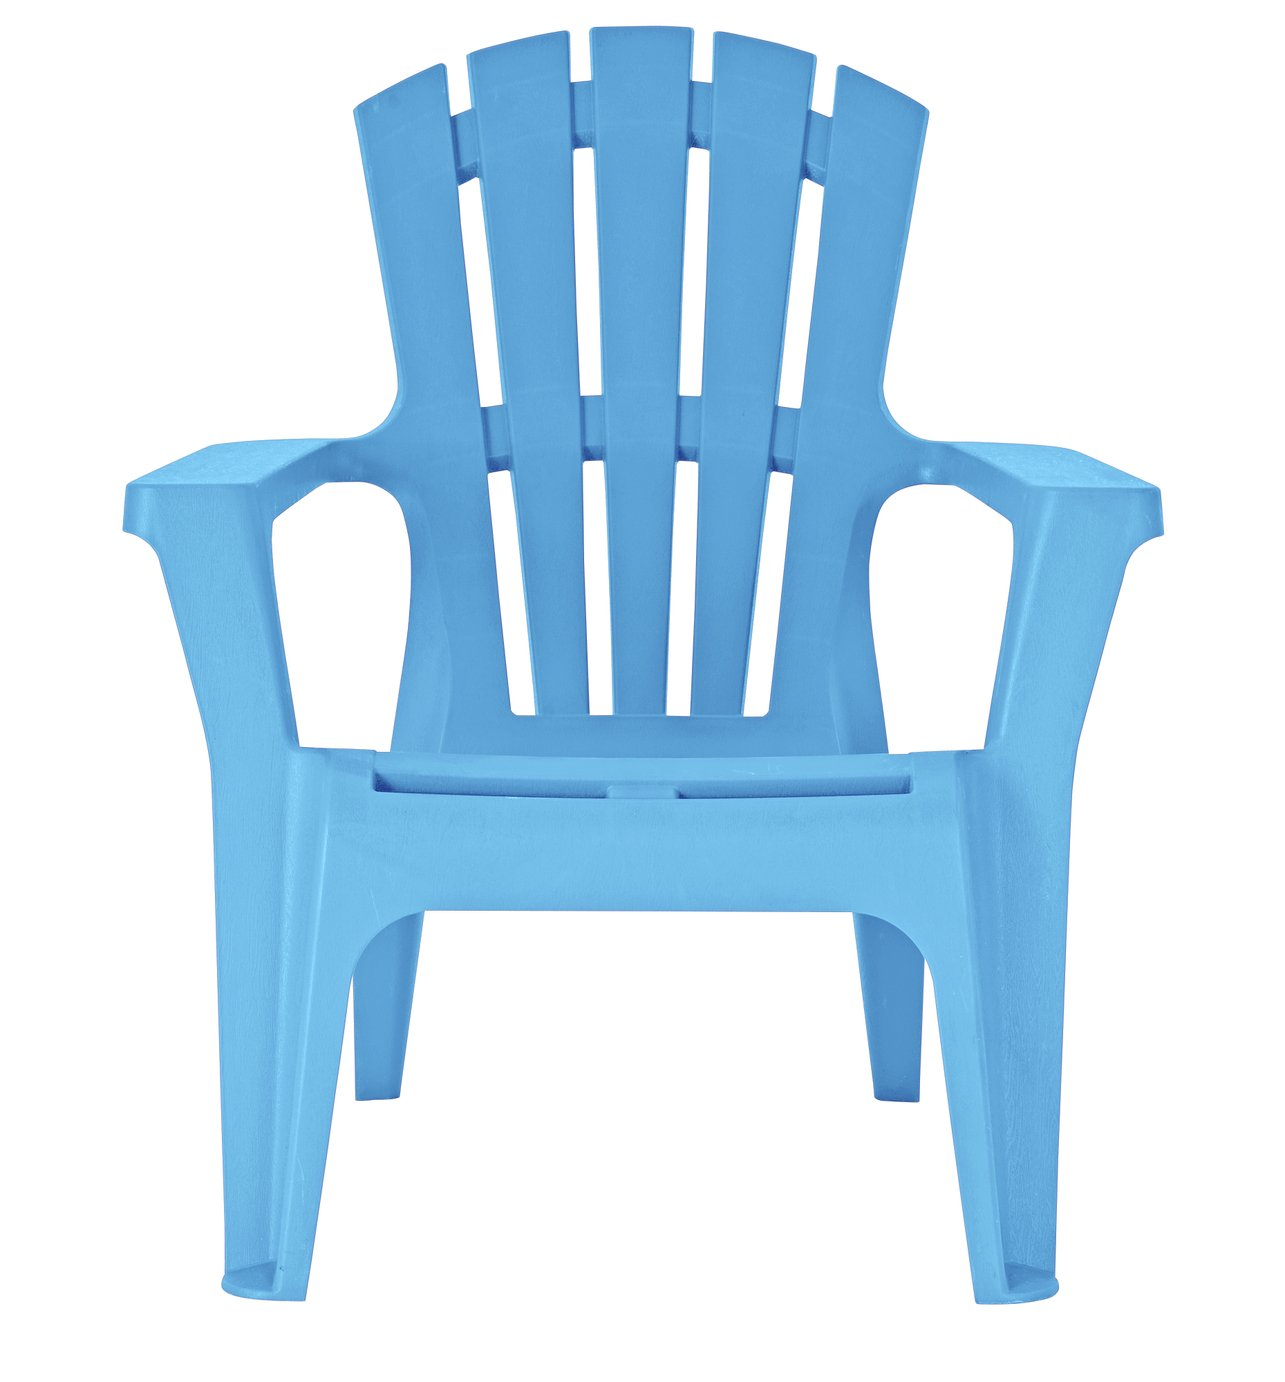 Image of Bicadesign Maryland Chair - Blue